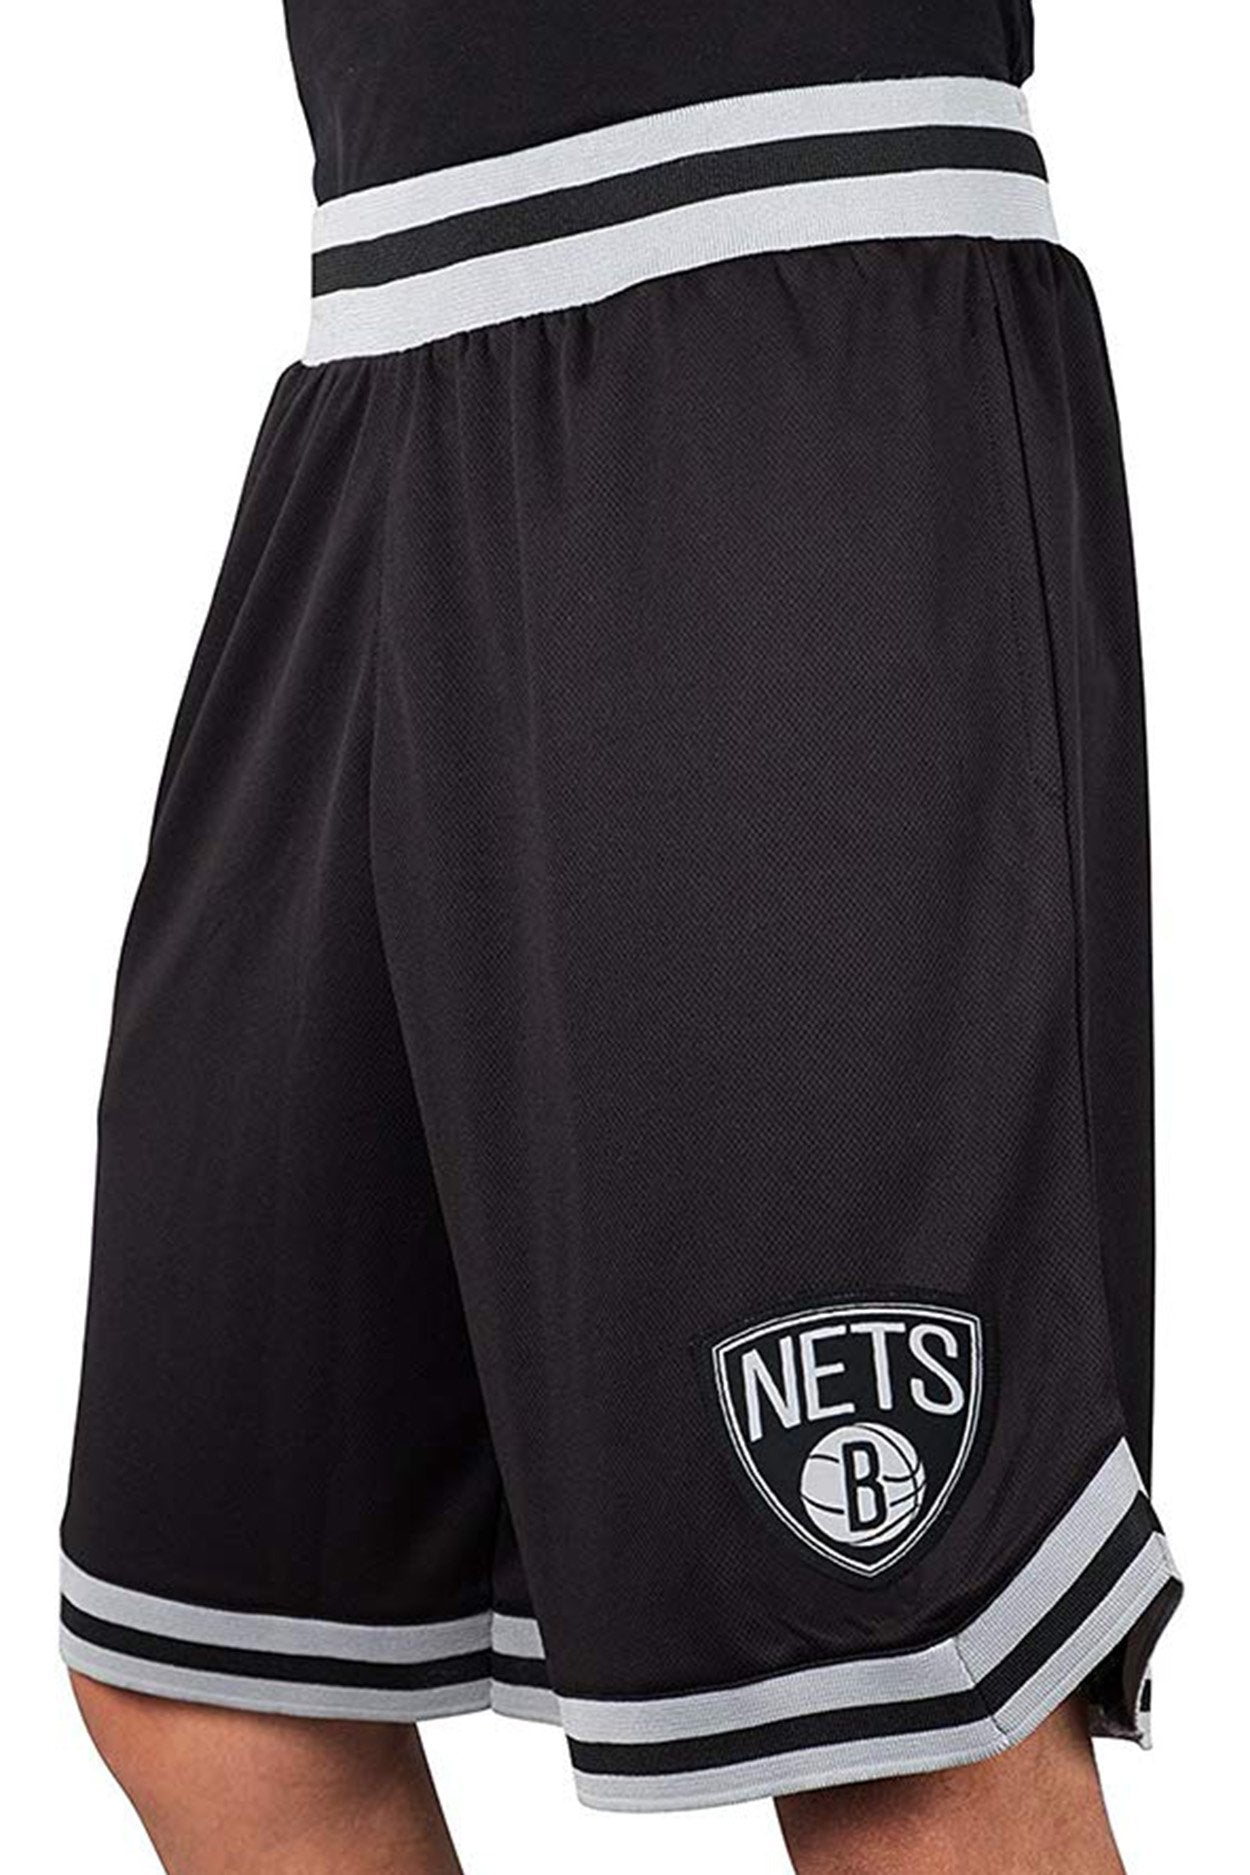 NBA Brooklyn Nets Men's Basketball Shorts|Brooklyn Nets